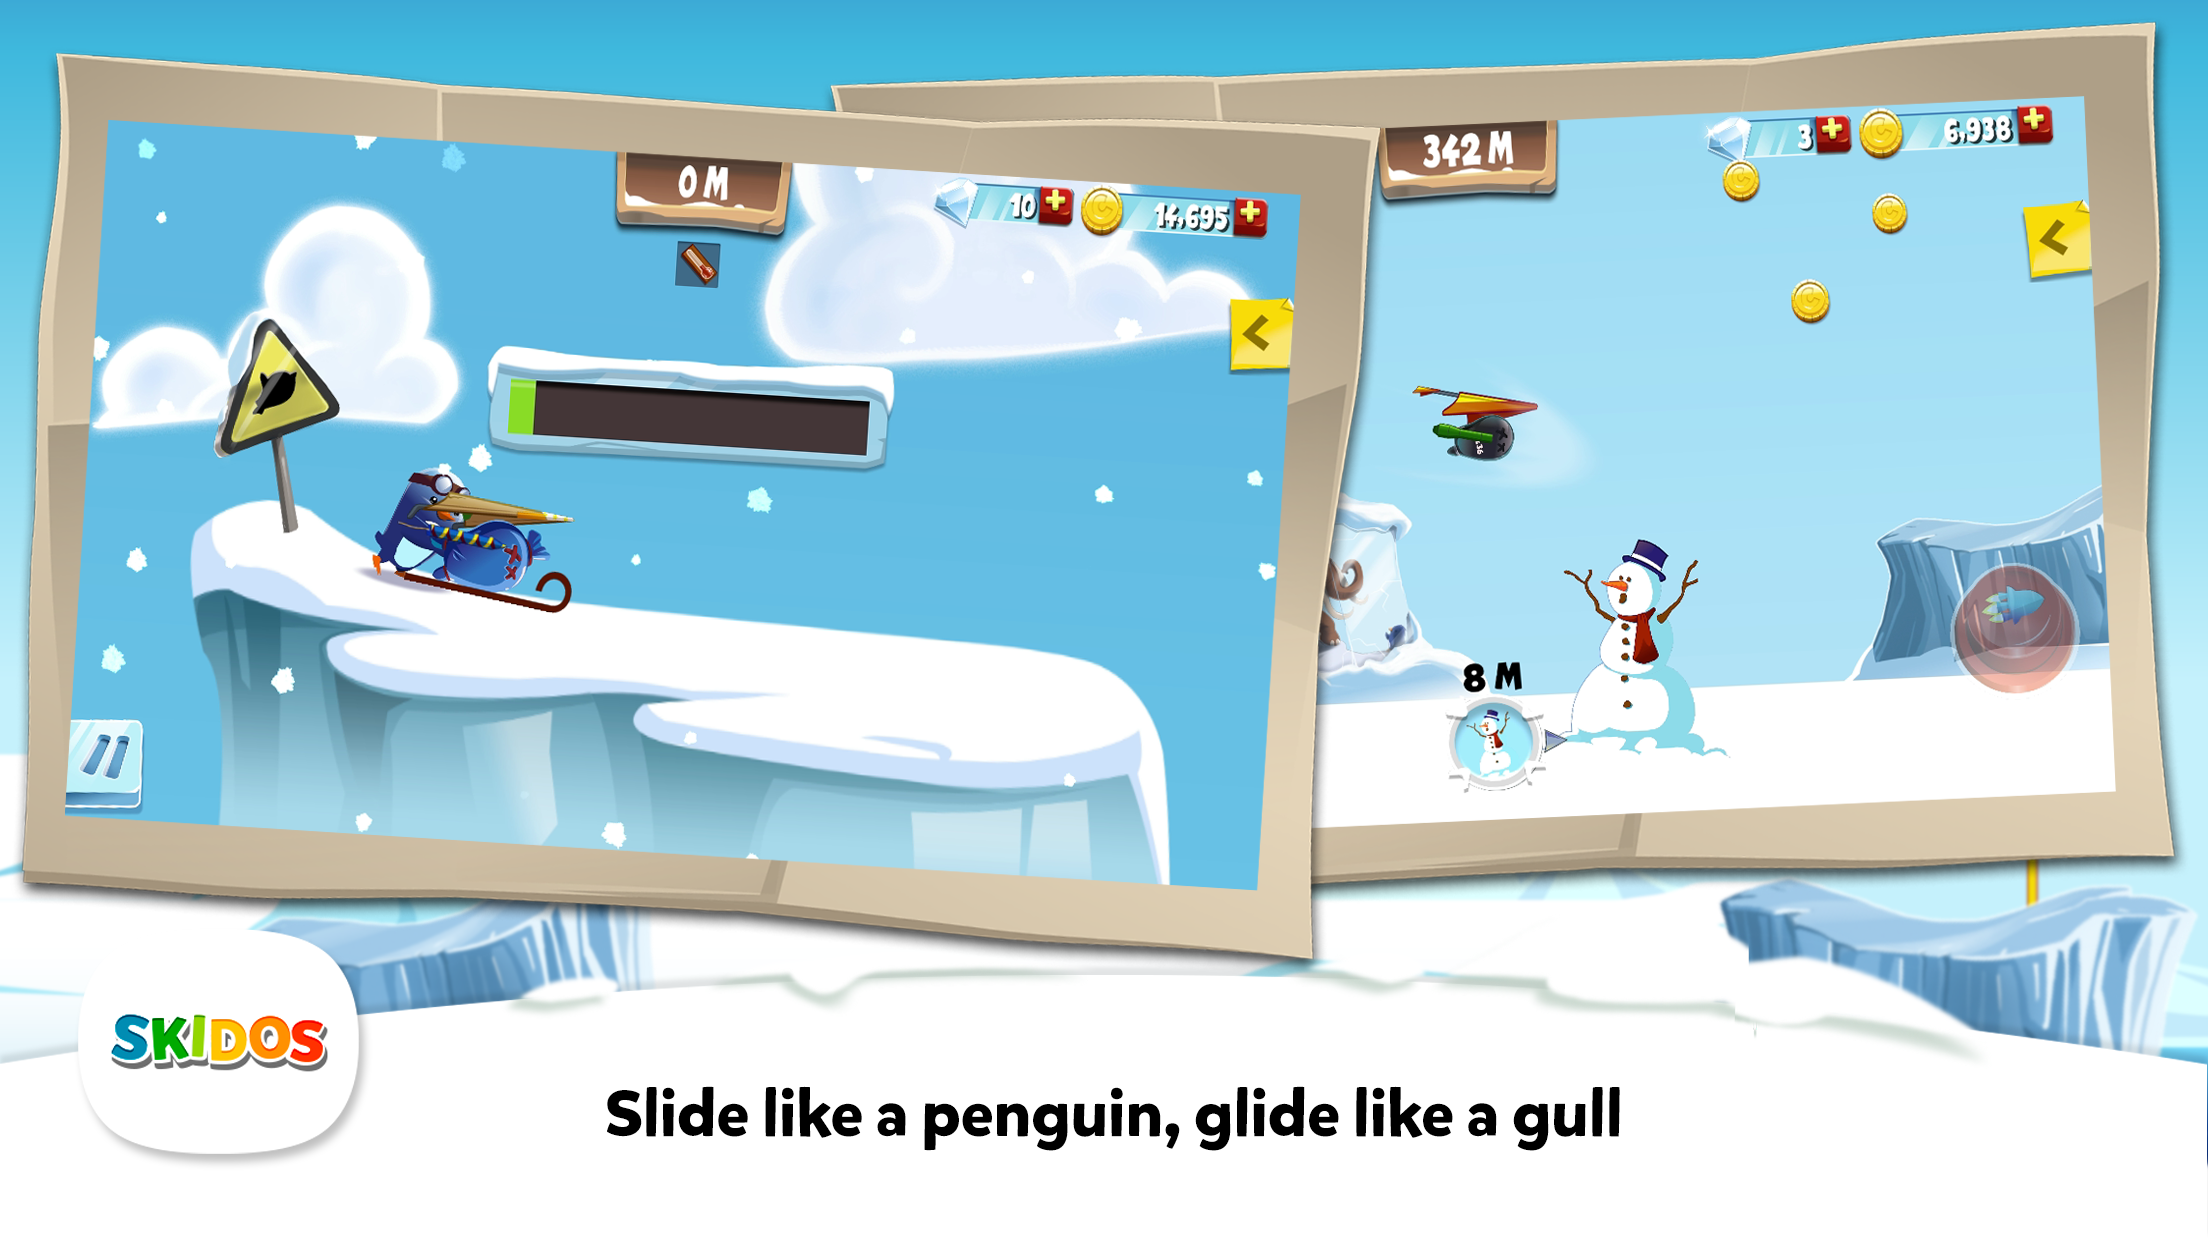 SKIDOS Educational Games